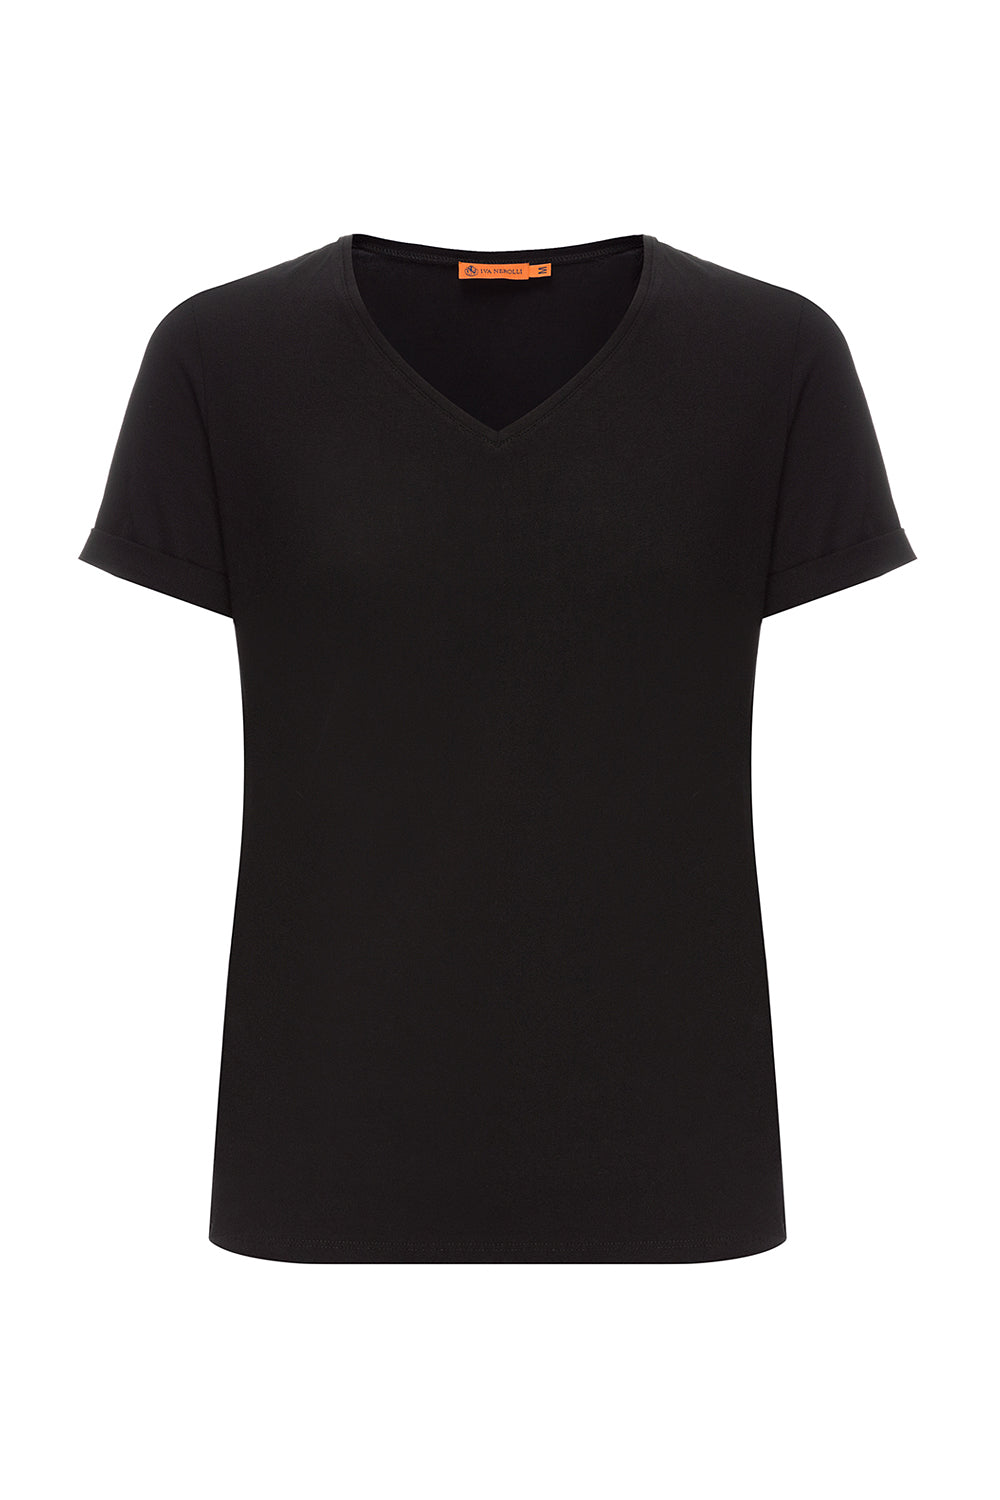 Black Cotton T-shirt